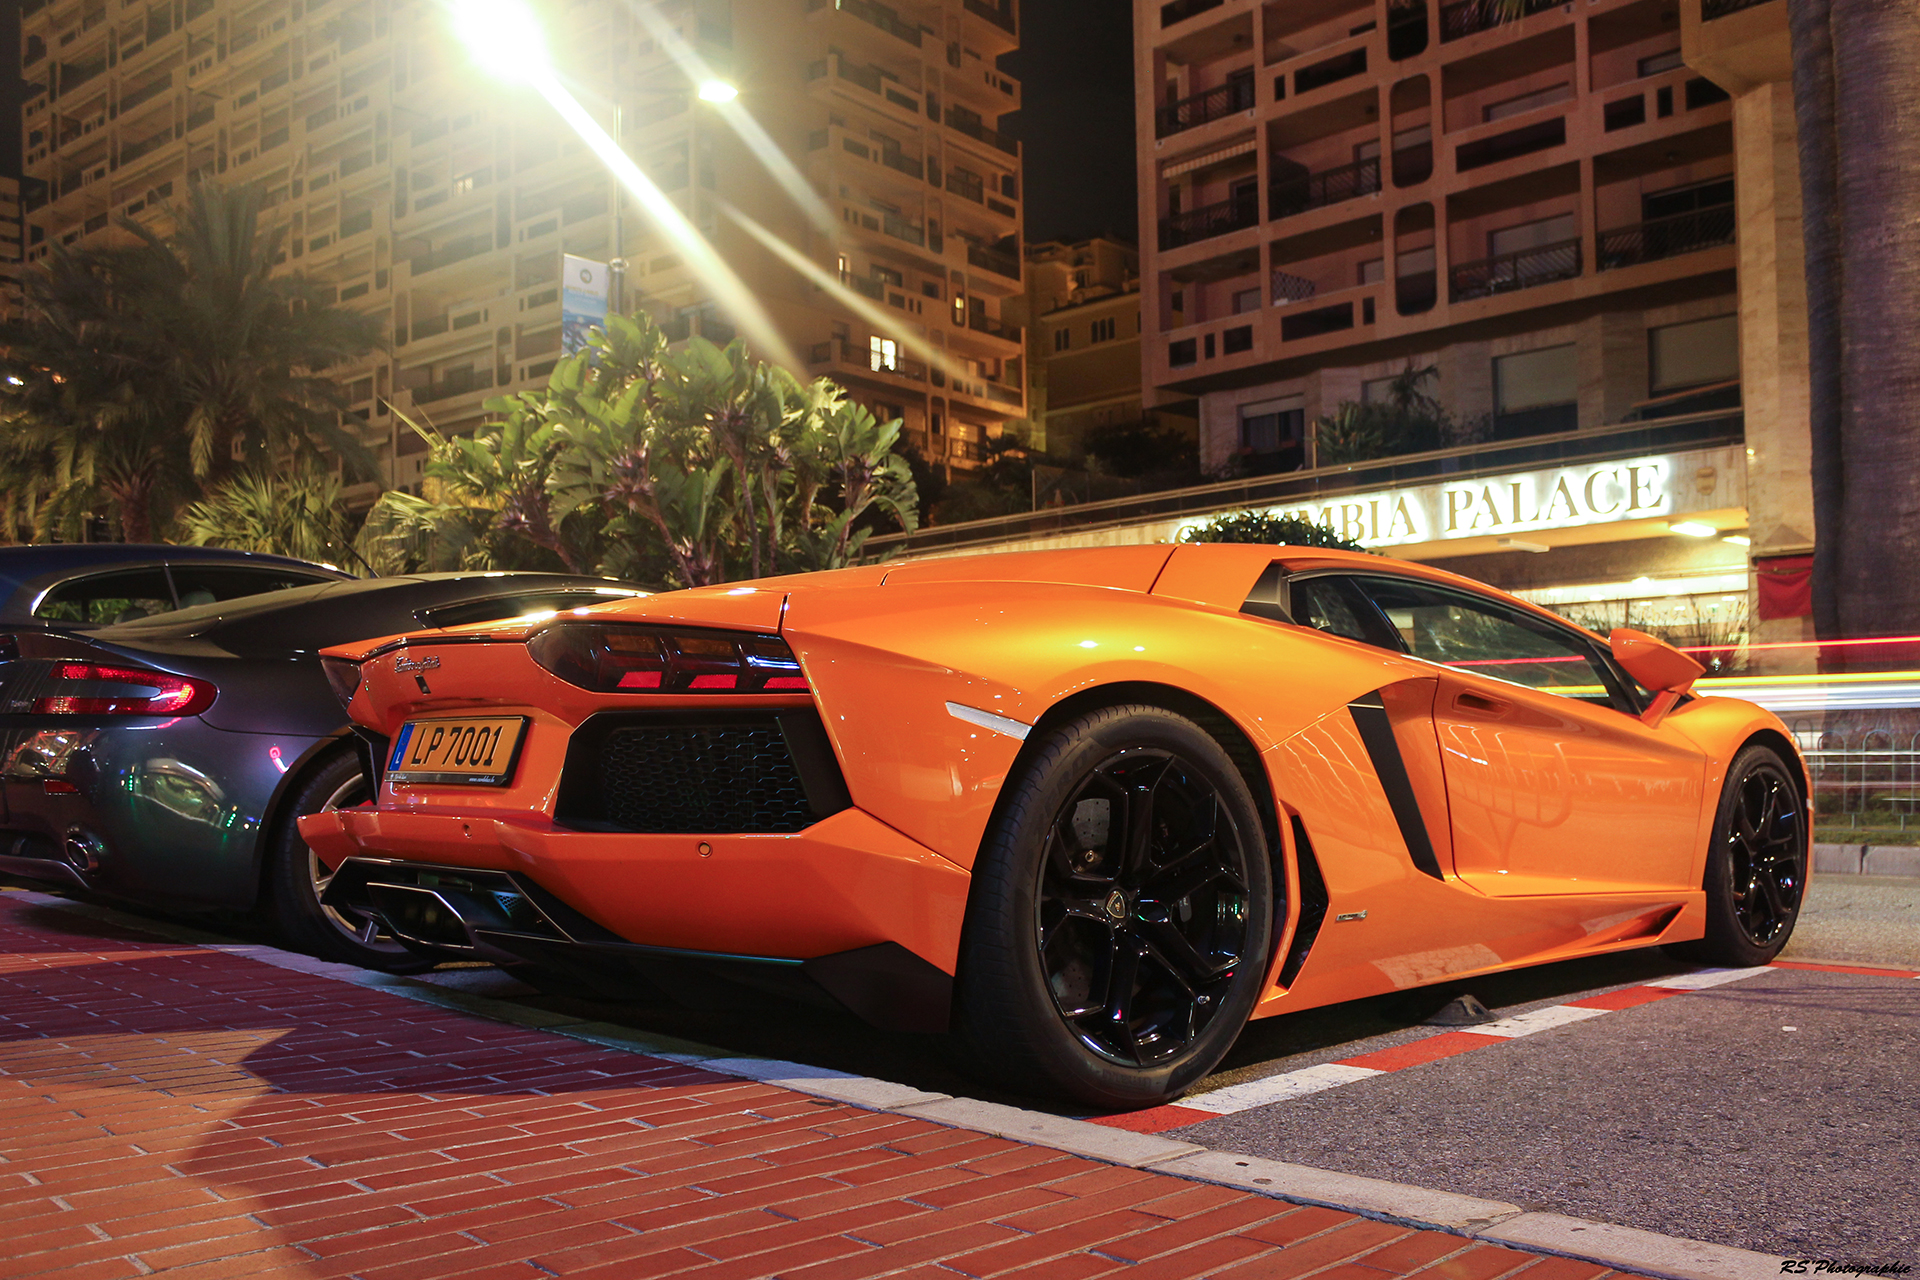 Lamborghini night rear - Top Marques Monaco 2016 - Arnaud Demasier RS Photographie